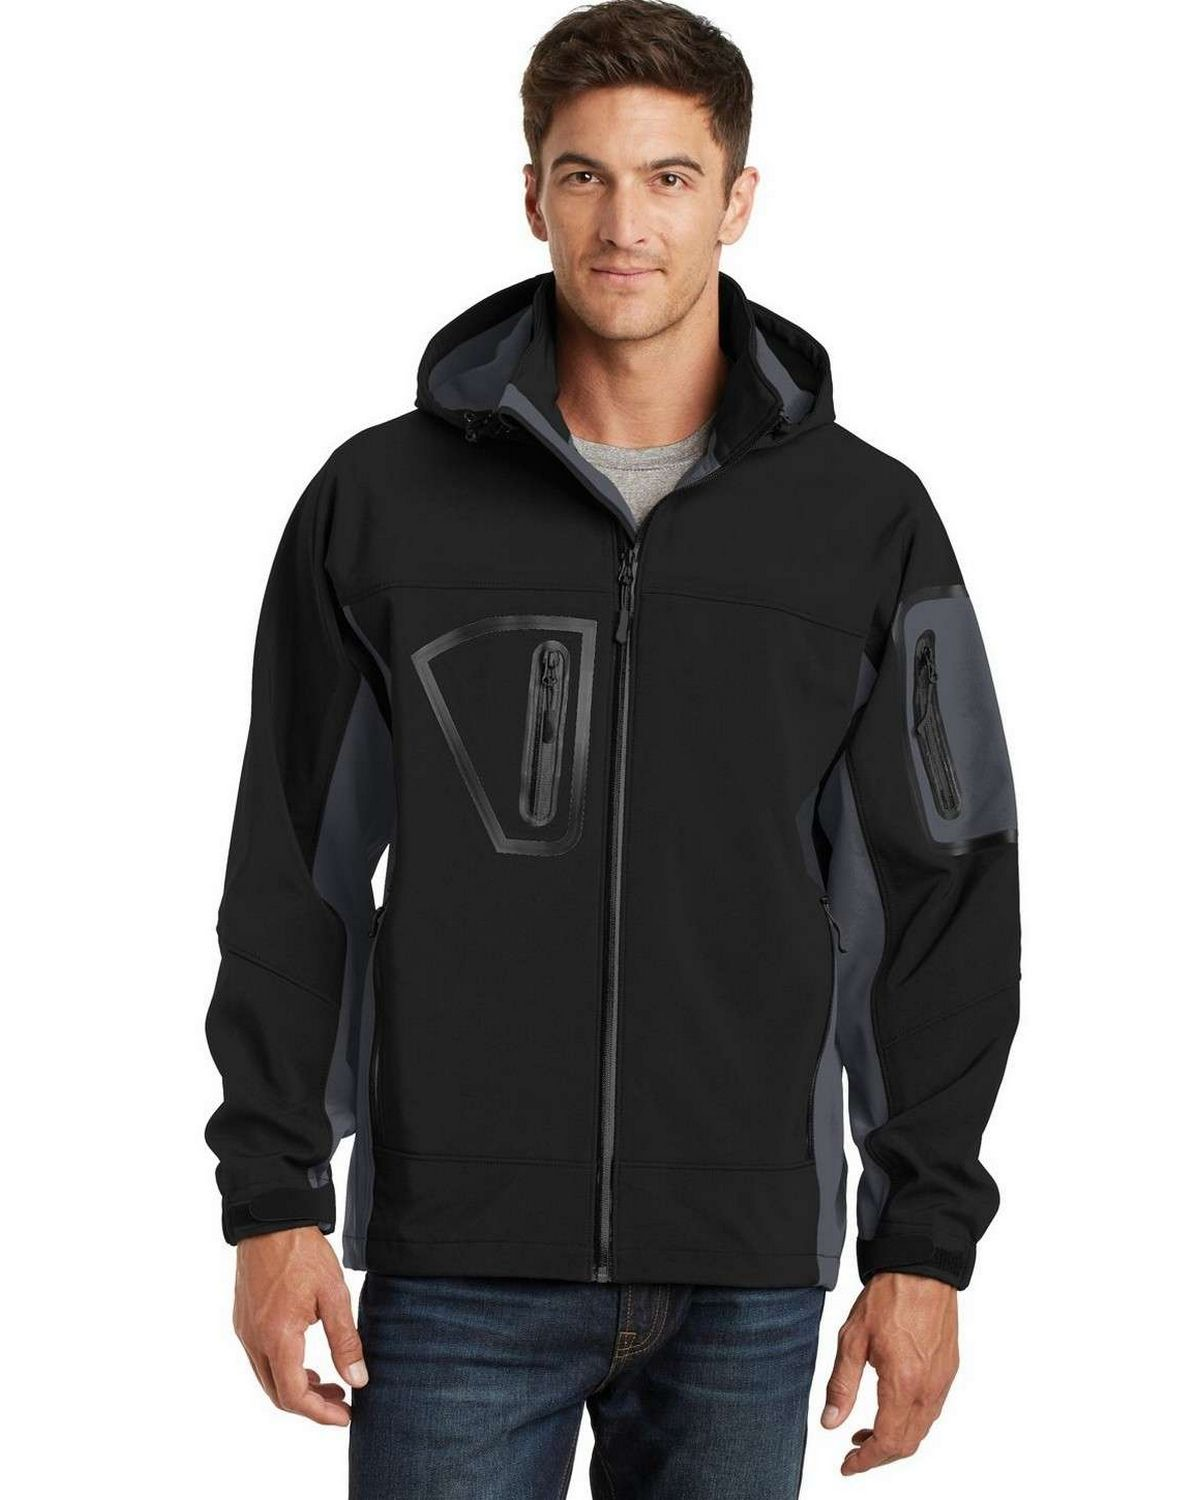 Port Authority J798 Waterproof Soft Shell Jacket